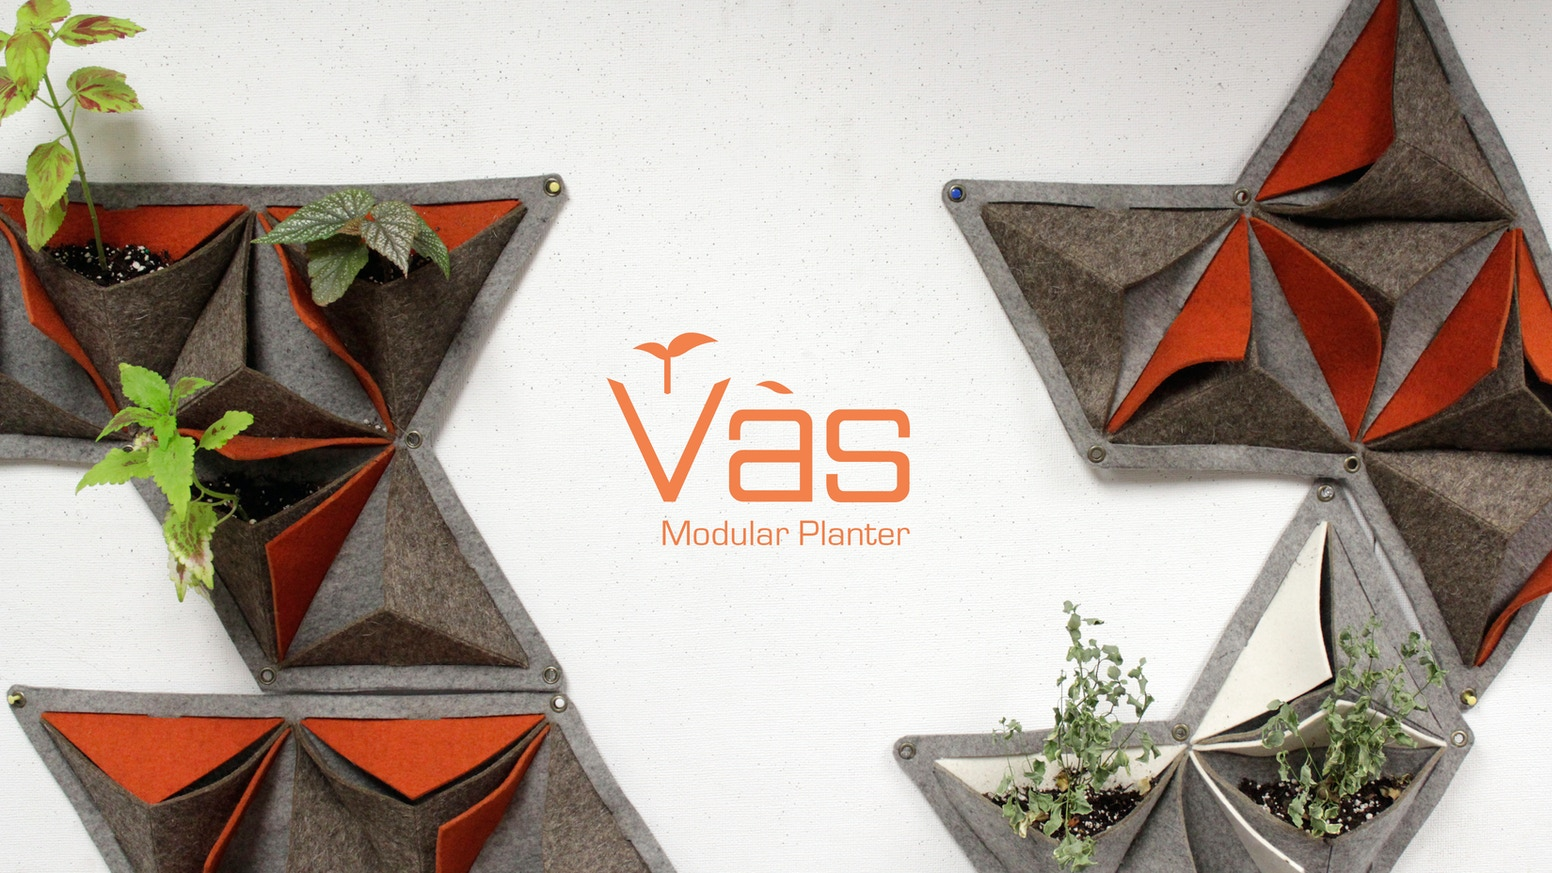 Designed to be fun, decorative, and eco-friendly. Vàs brings the joy of gardening to even the smallest of spaces.